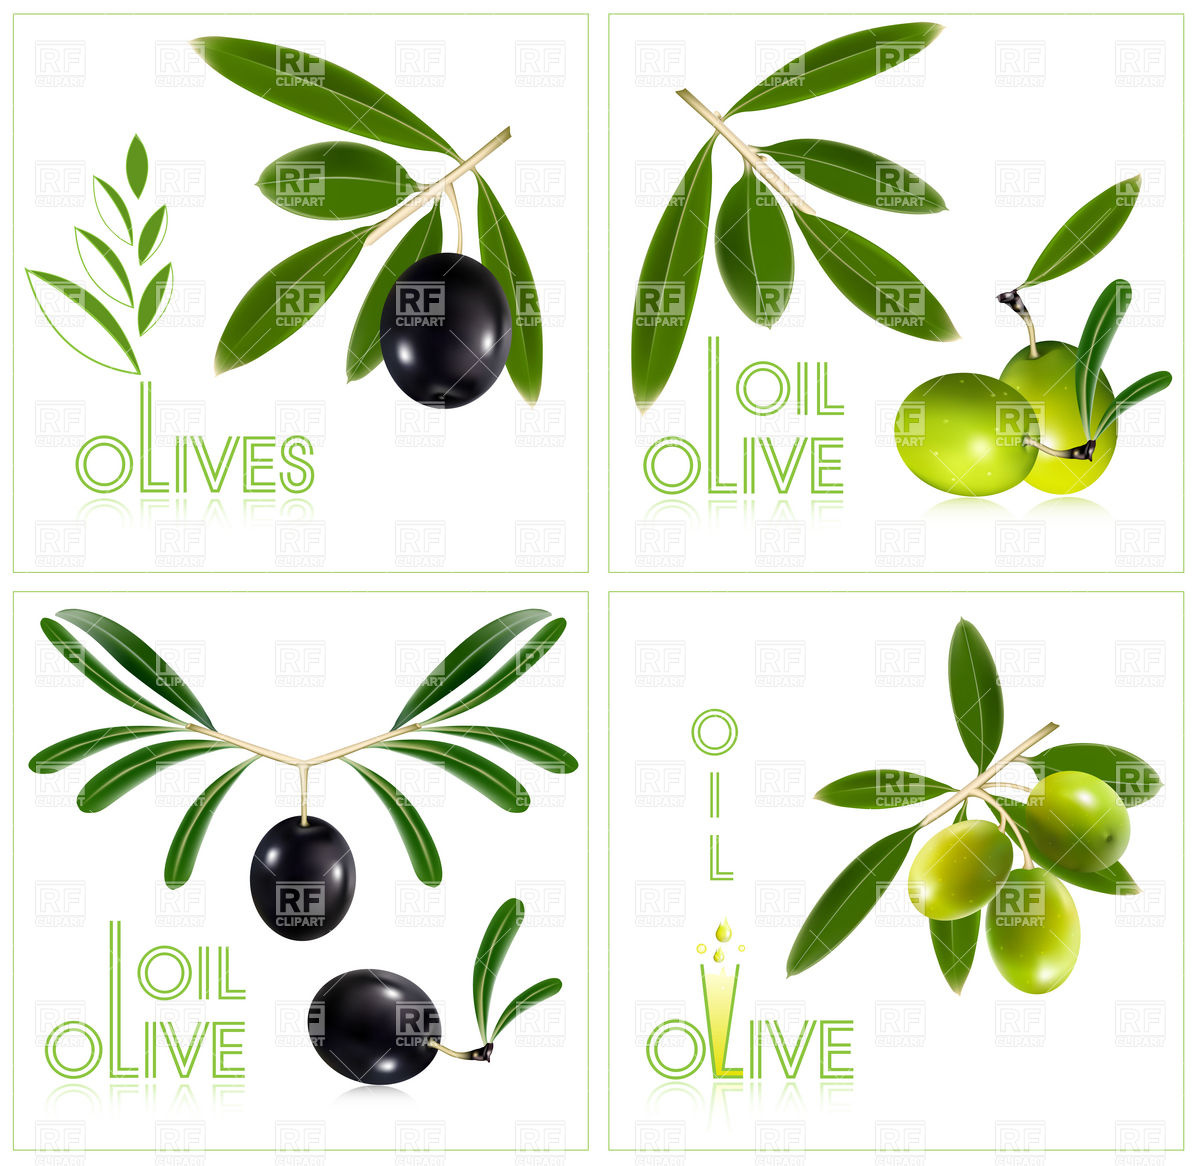 1200x1166 Green And Black Olives With Leaves Vector Image Vector Artwork